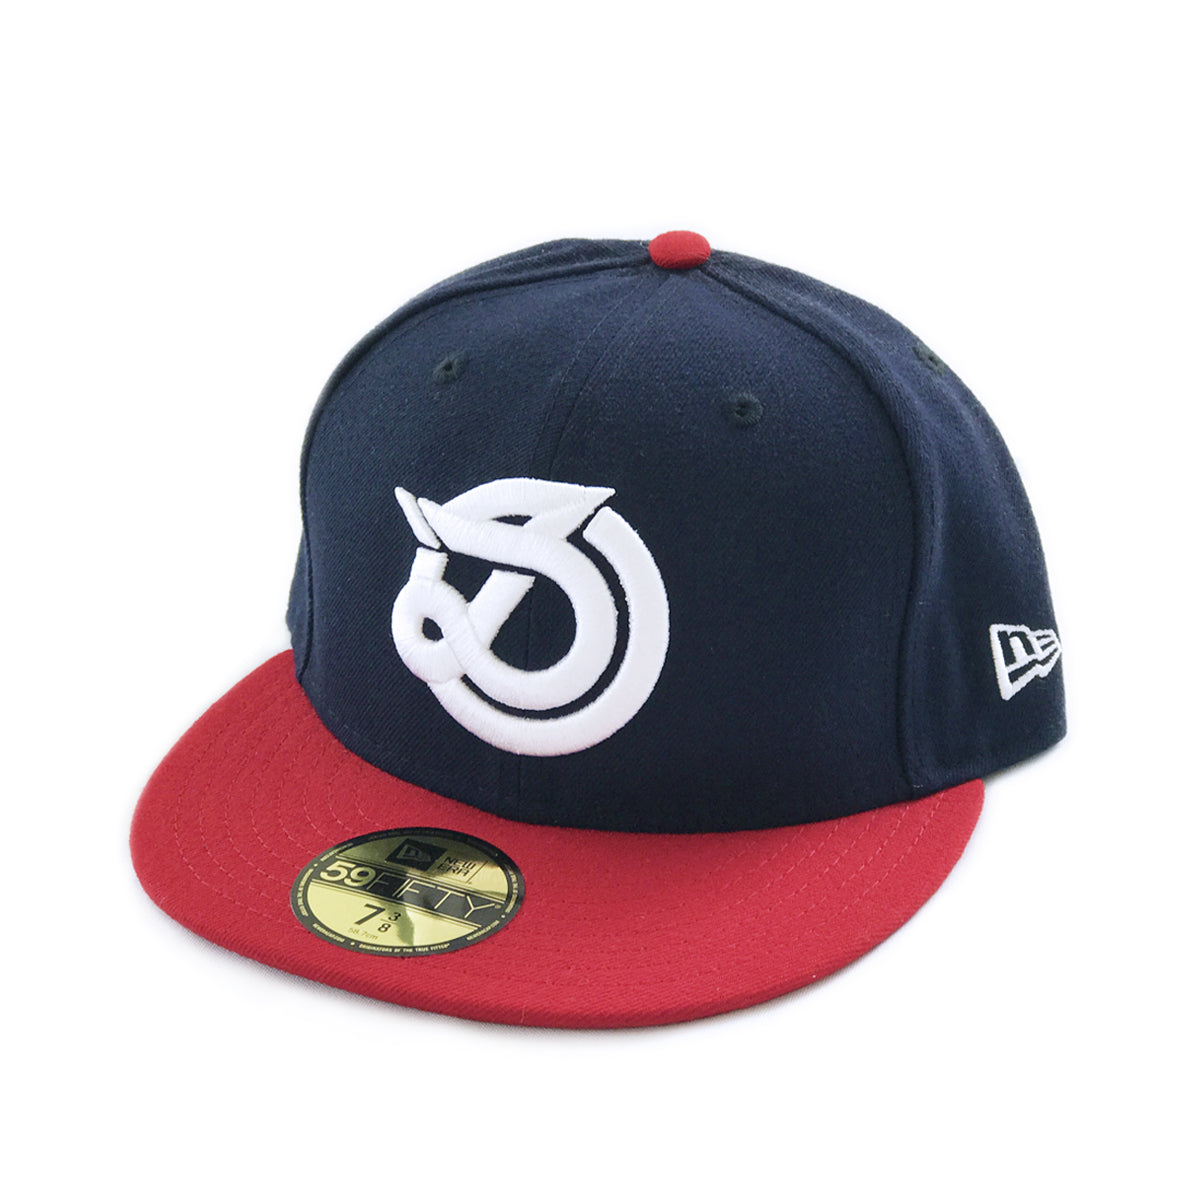 7b4a966049f ... 50% off dlog new era 59fifty fitted cap navy red 4b14f 6ec06